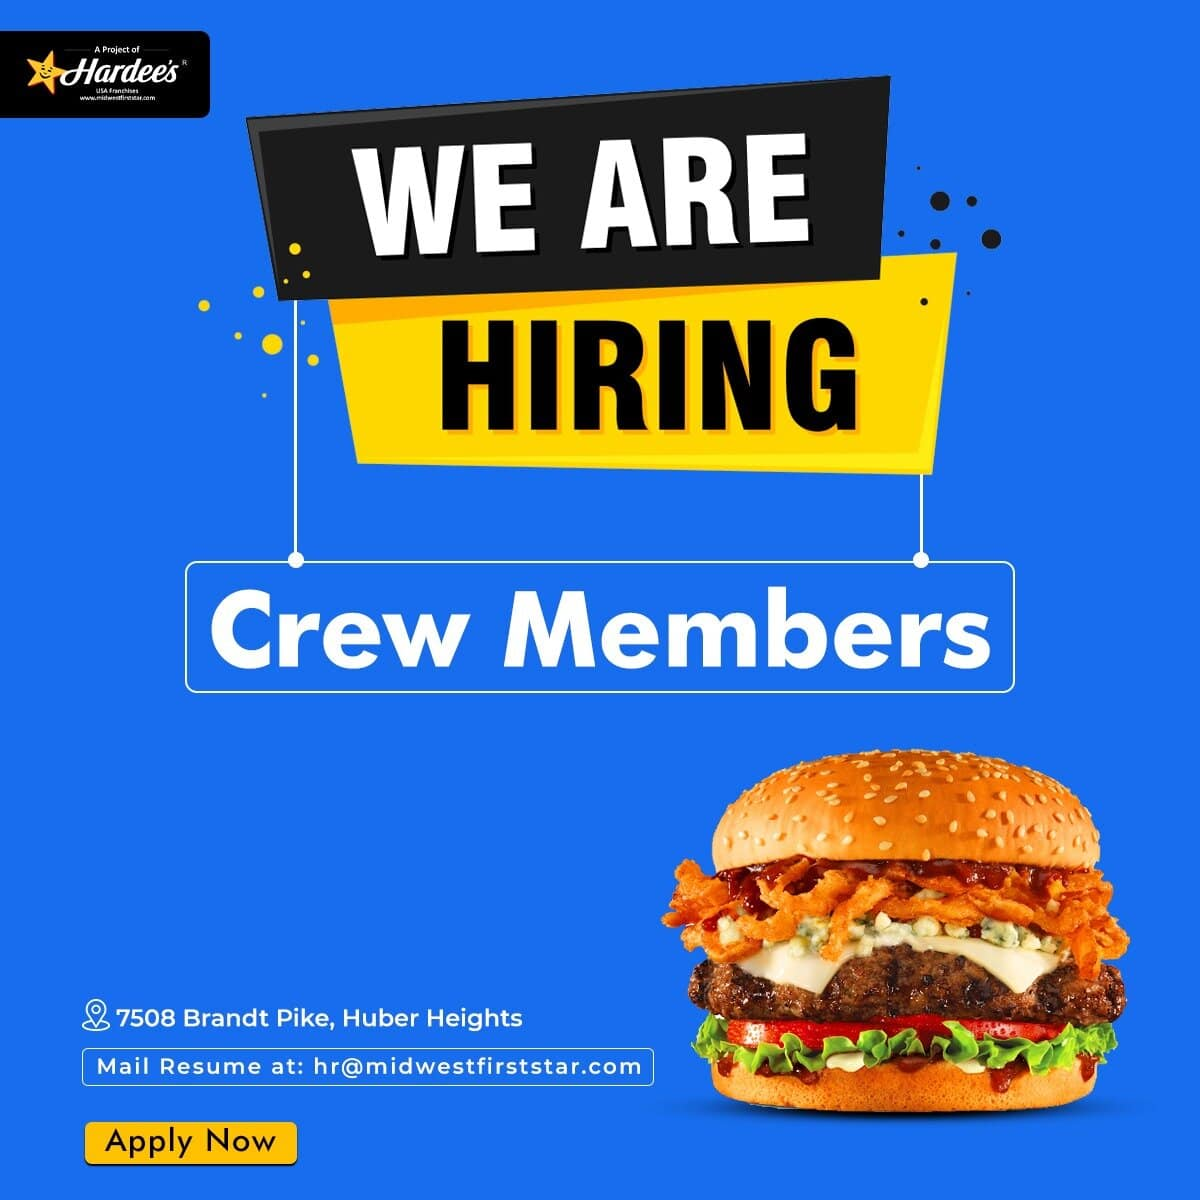 Looking for Crew Members including Cashiers, Cooks for Hardee's restaurant in Huber Heights, OHIO